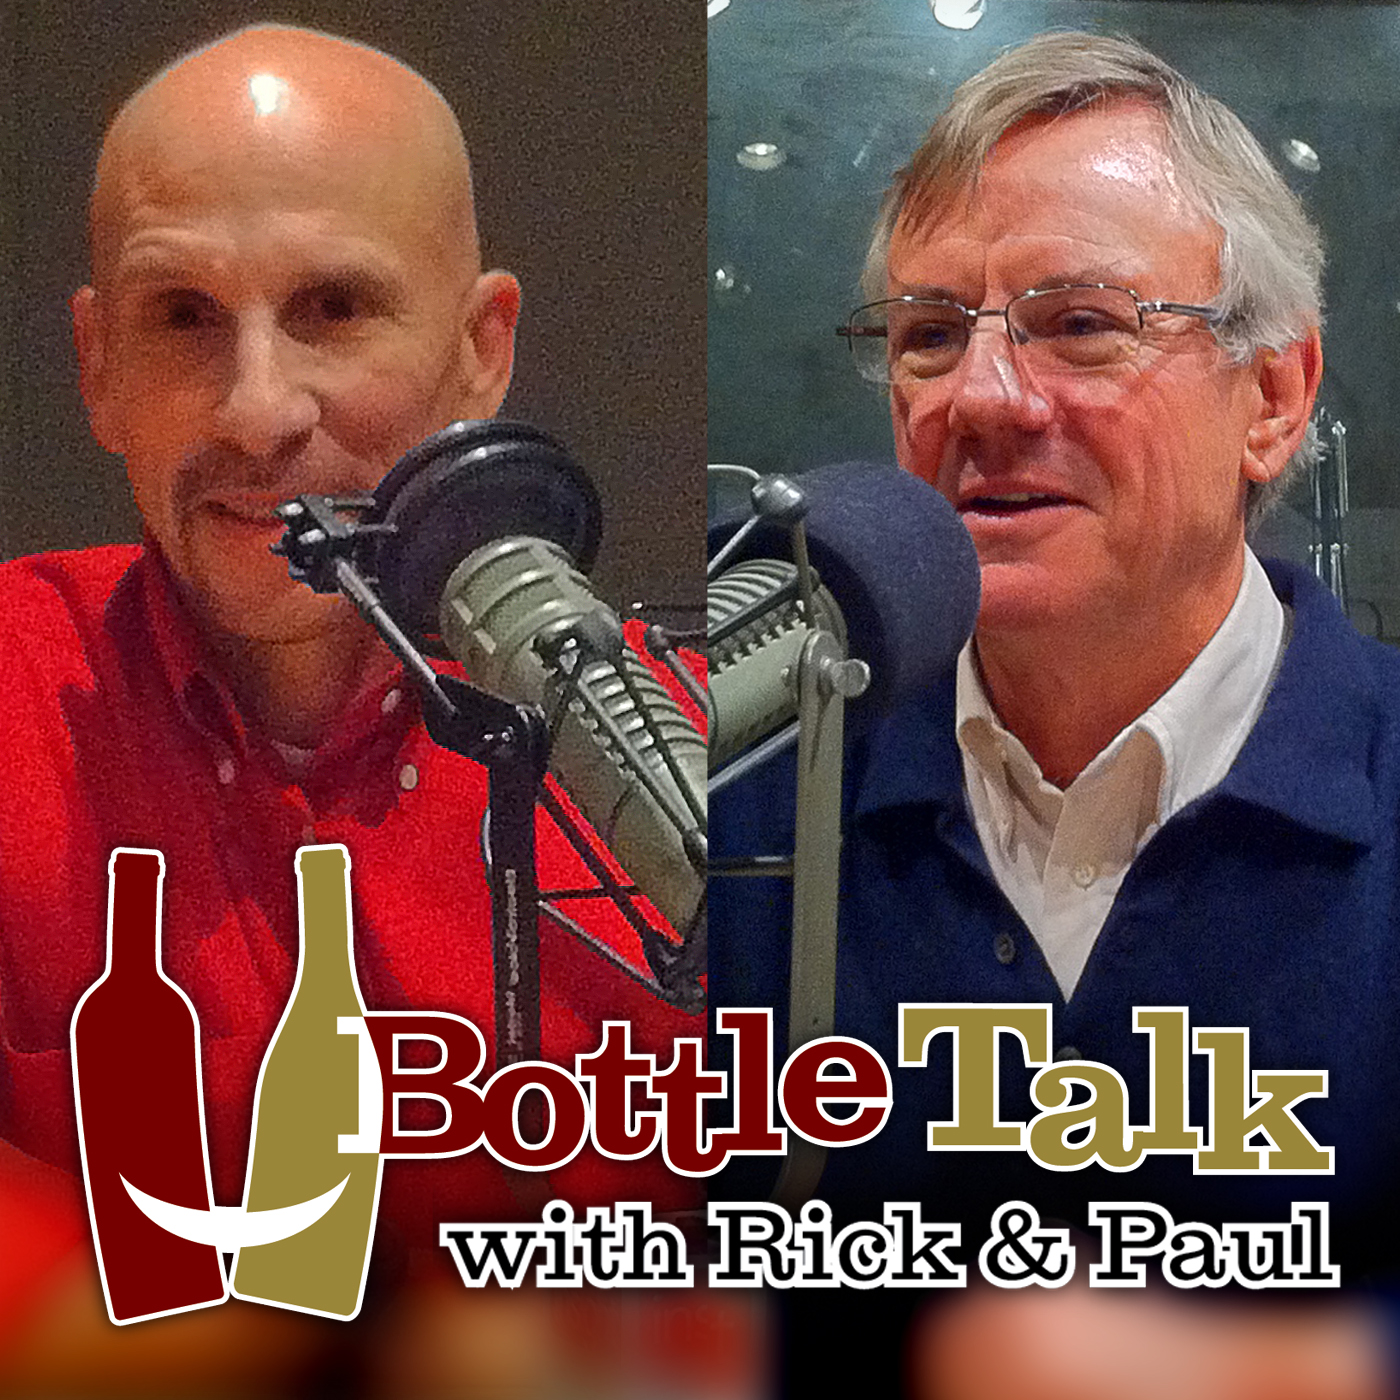 Bottle Talk with Rick & Paul